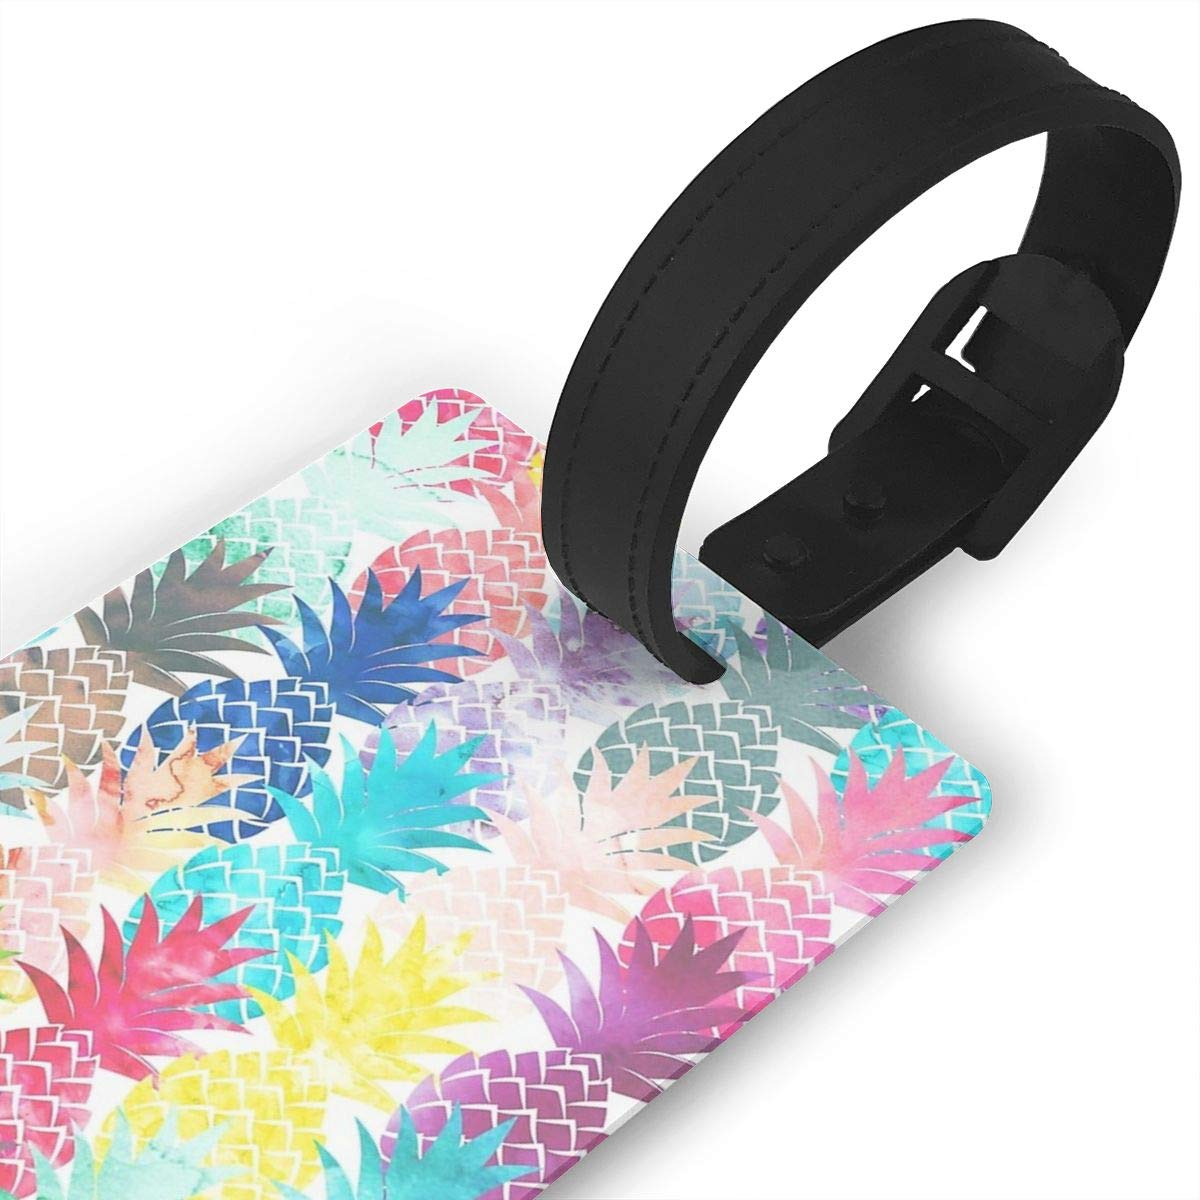 Hawaiian Pineapple Pattern Tropical Watercolor Luggage Tags Suitcase Labels Bag Travel Accessories Set of 2